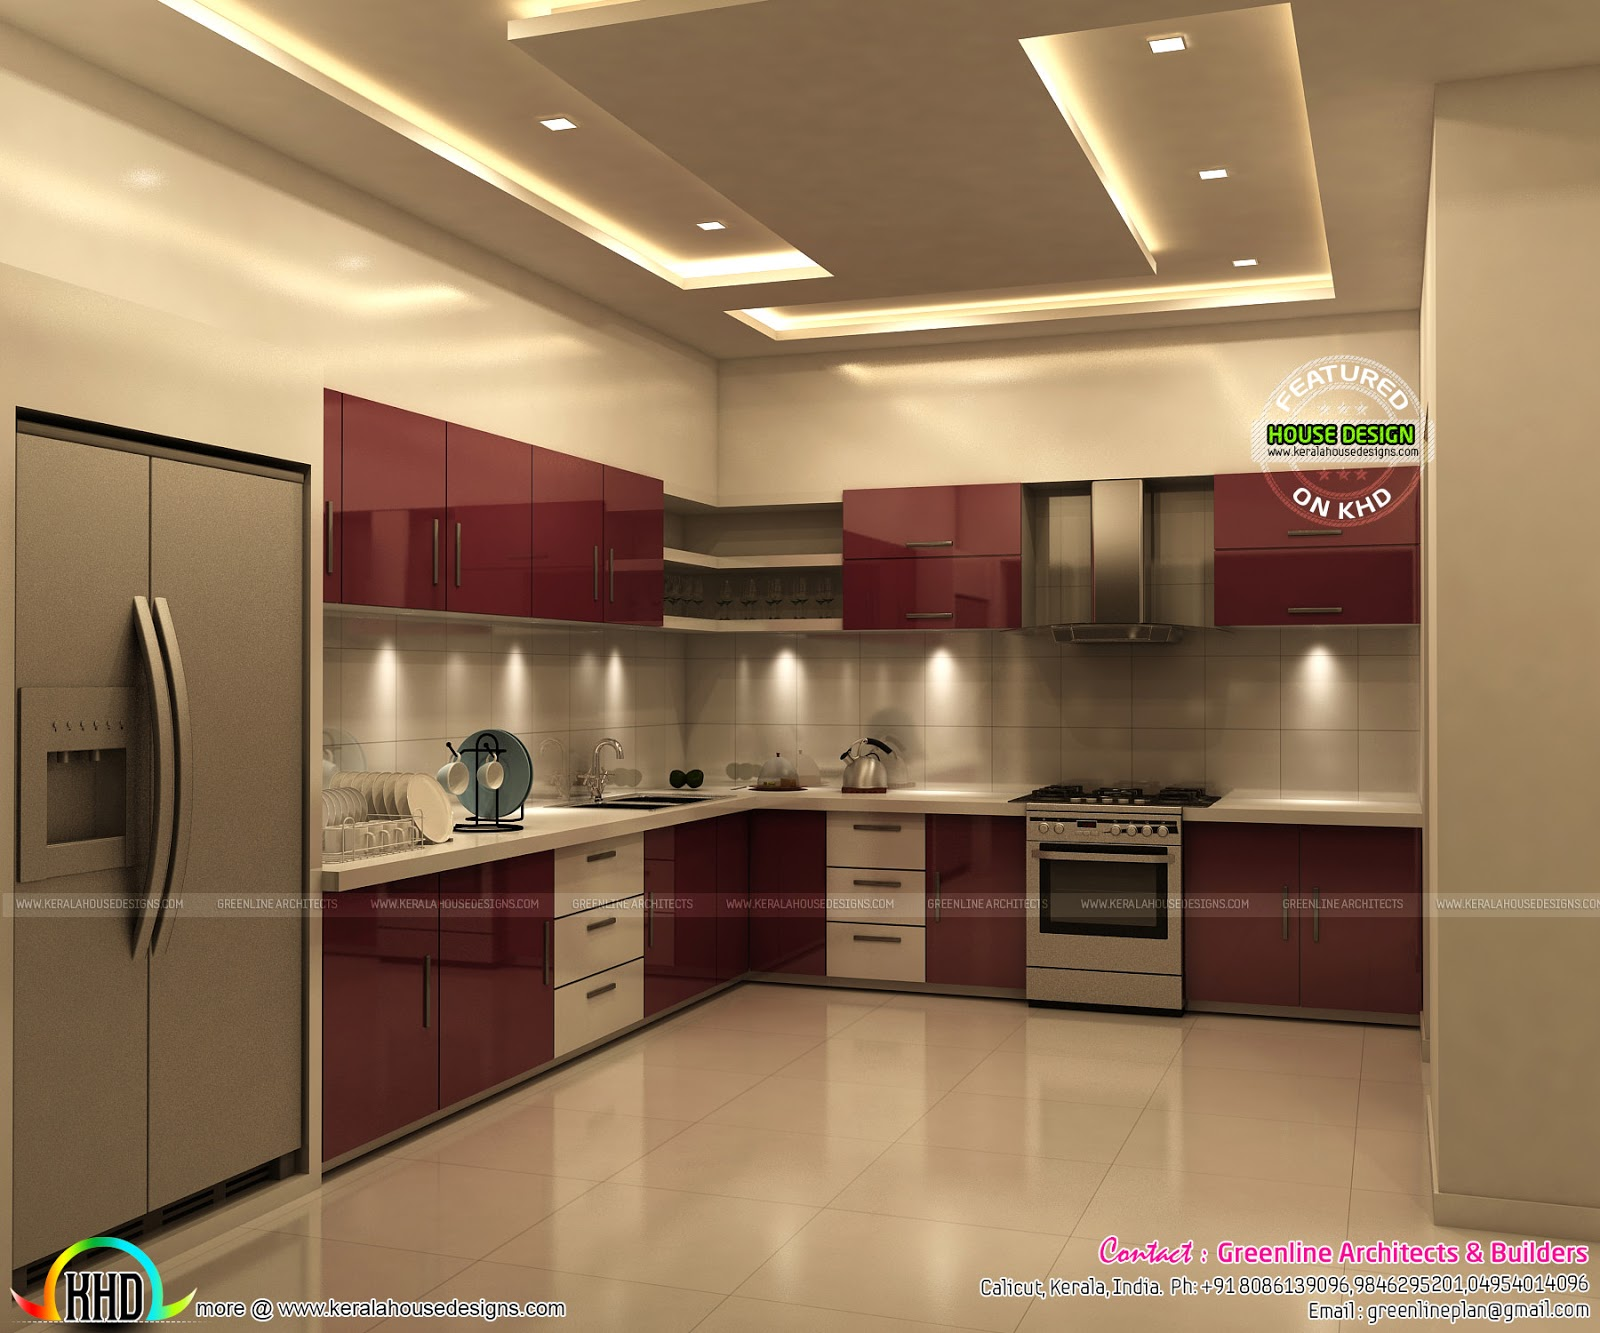 Superb kitchen and bedroom interiors kerala home design for My home interior design